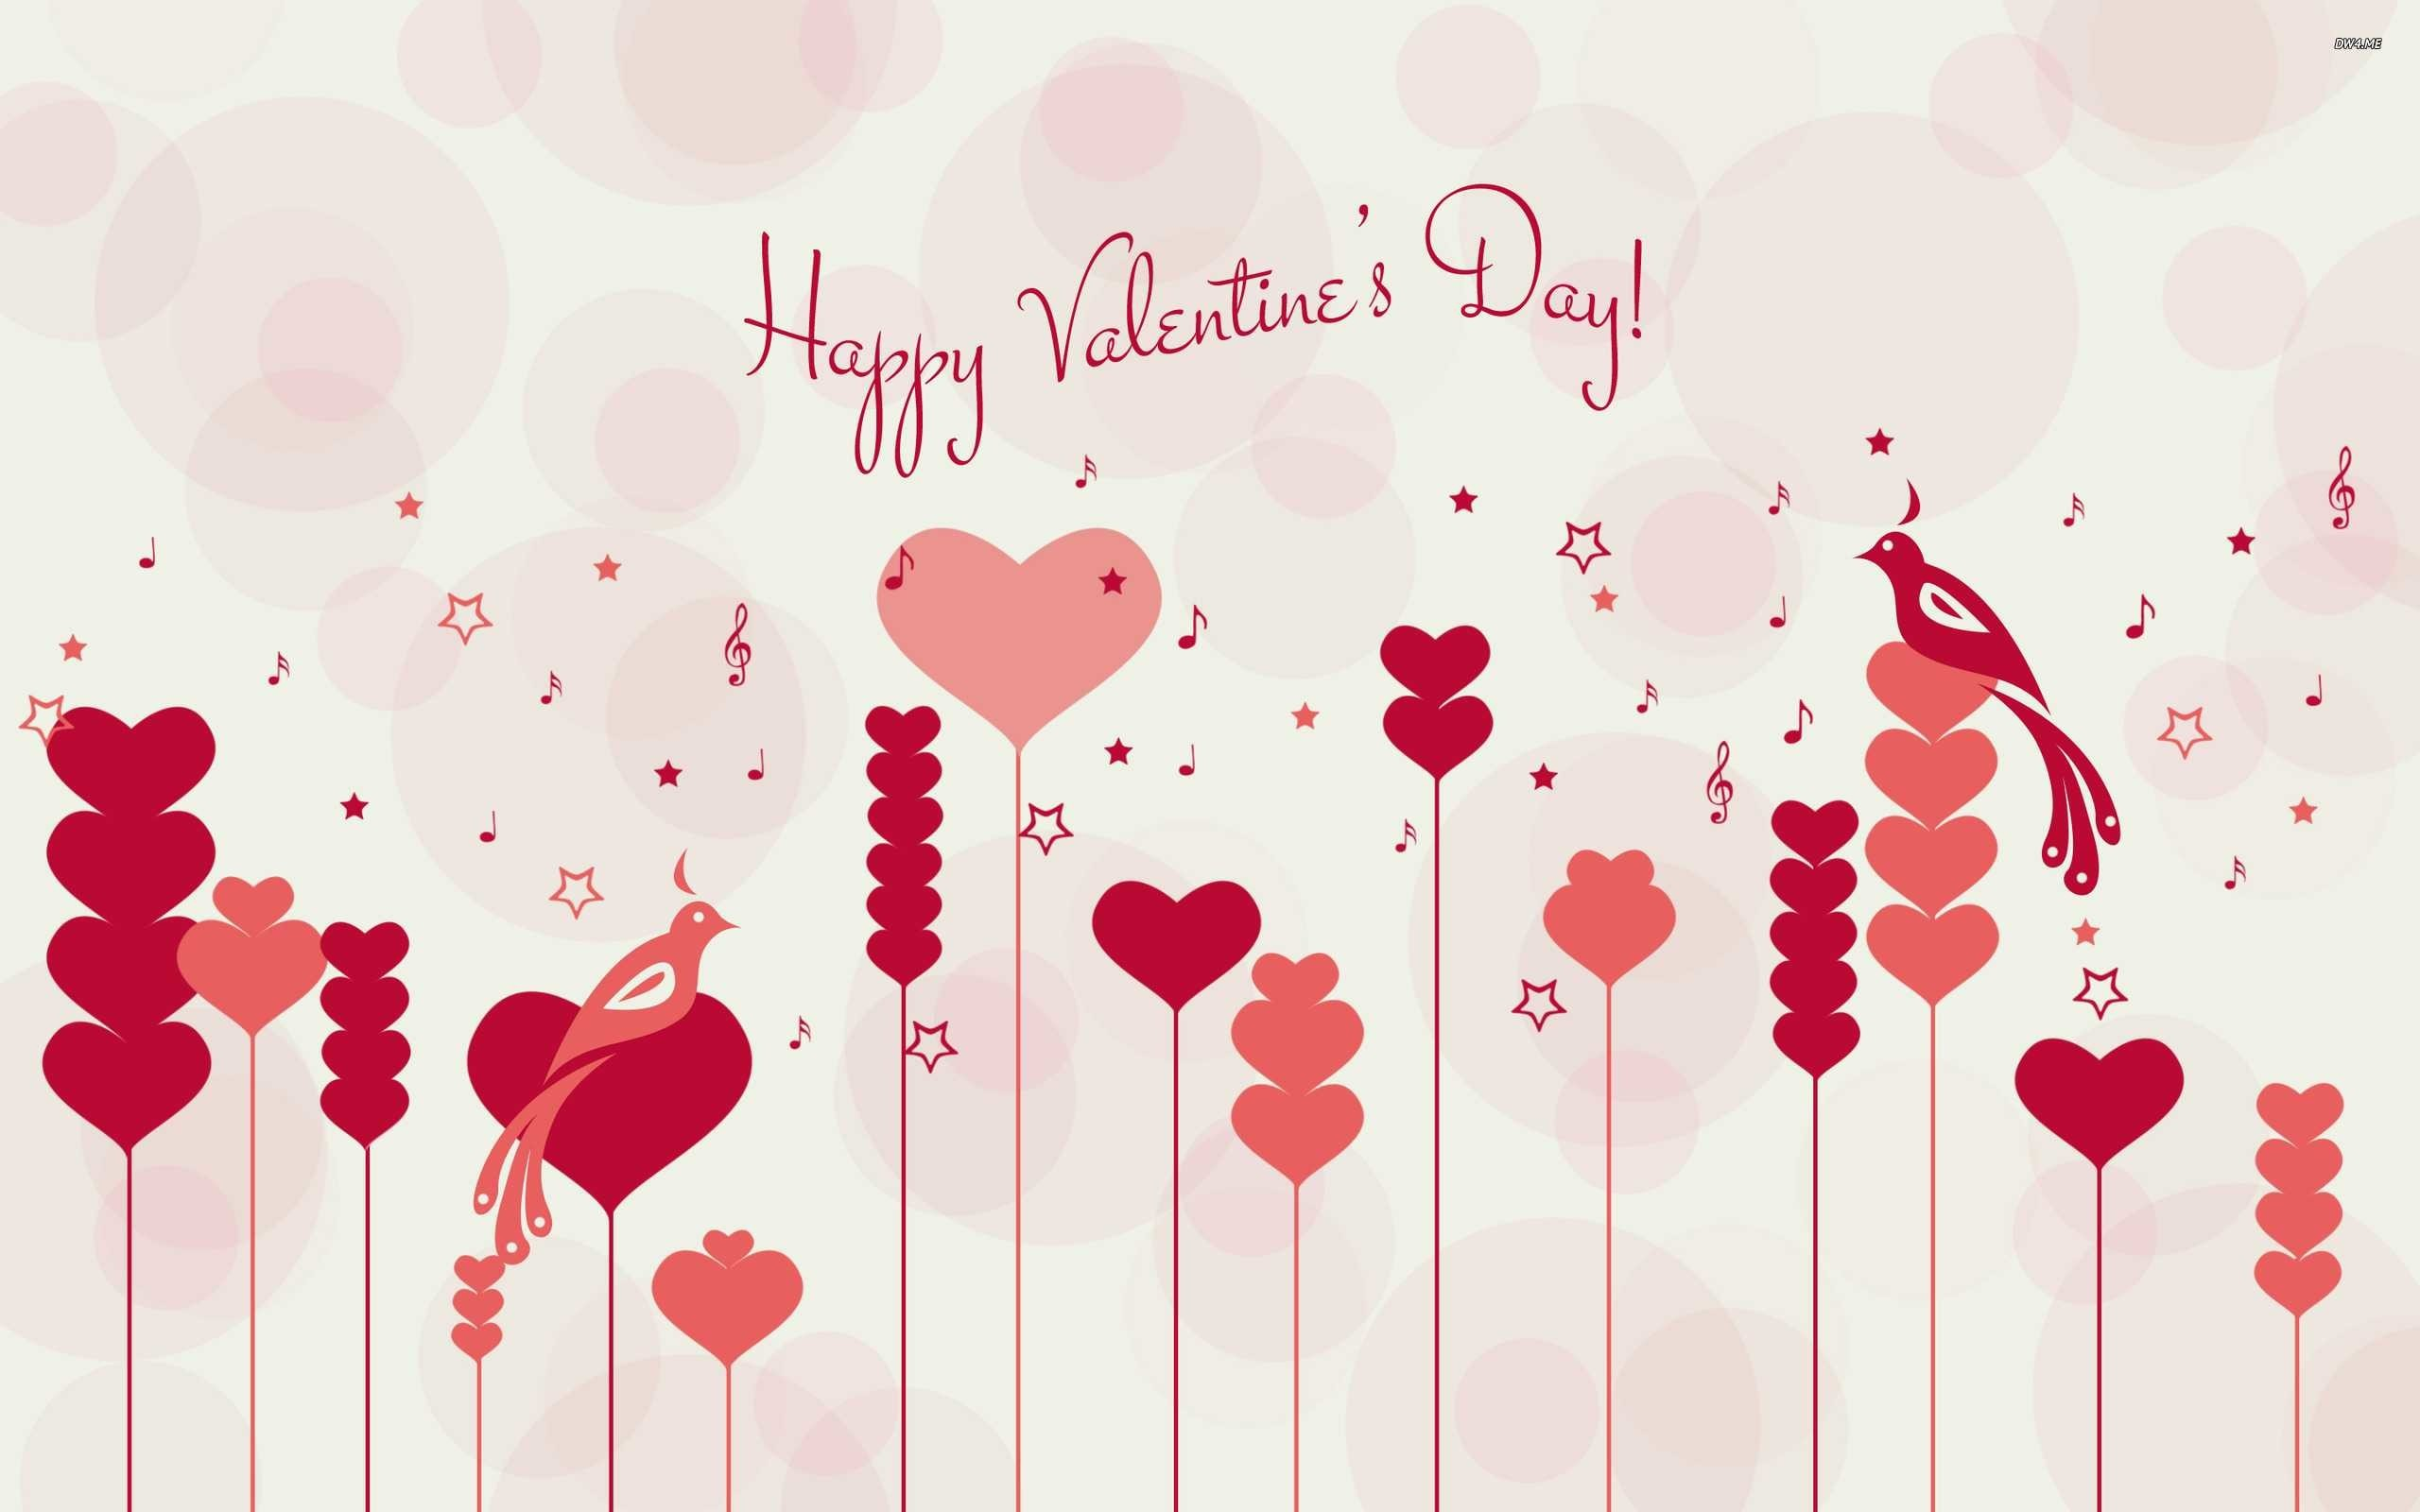 2560x1600  Happy Valentines Day Wallpaper Photos Full Hd Of Desktop High  Resolution · 0 · Download · Res: 3840x2160,